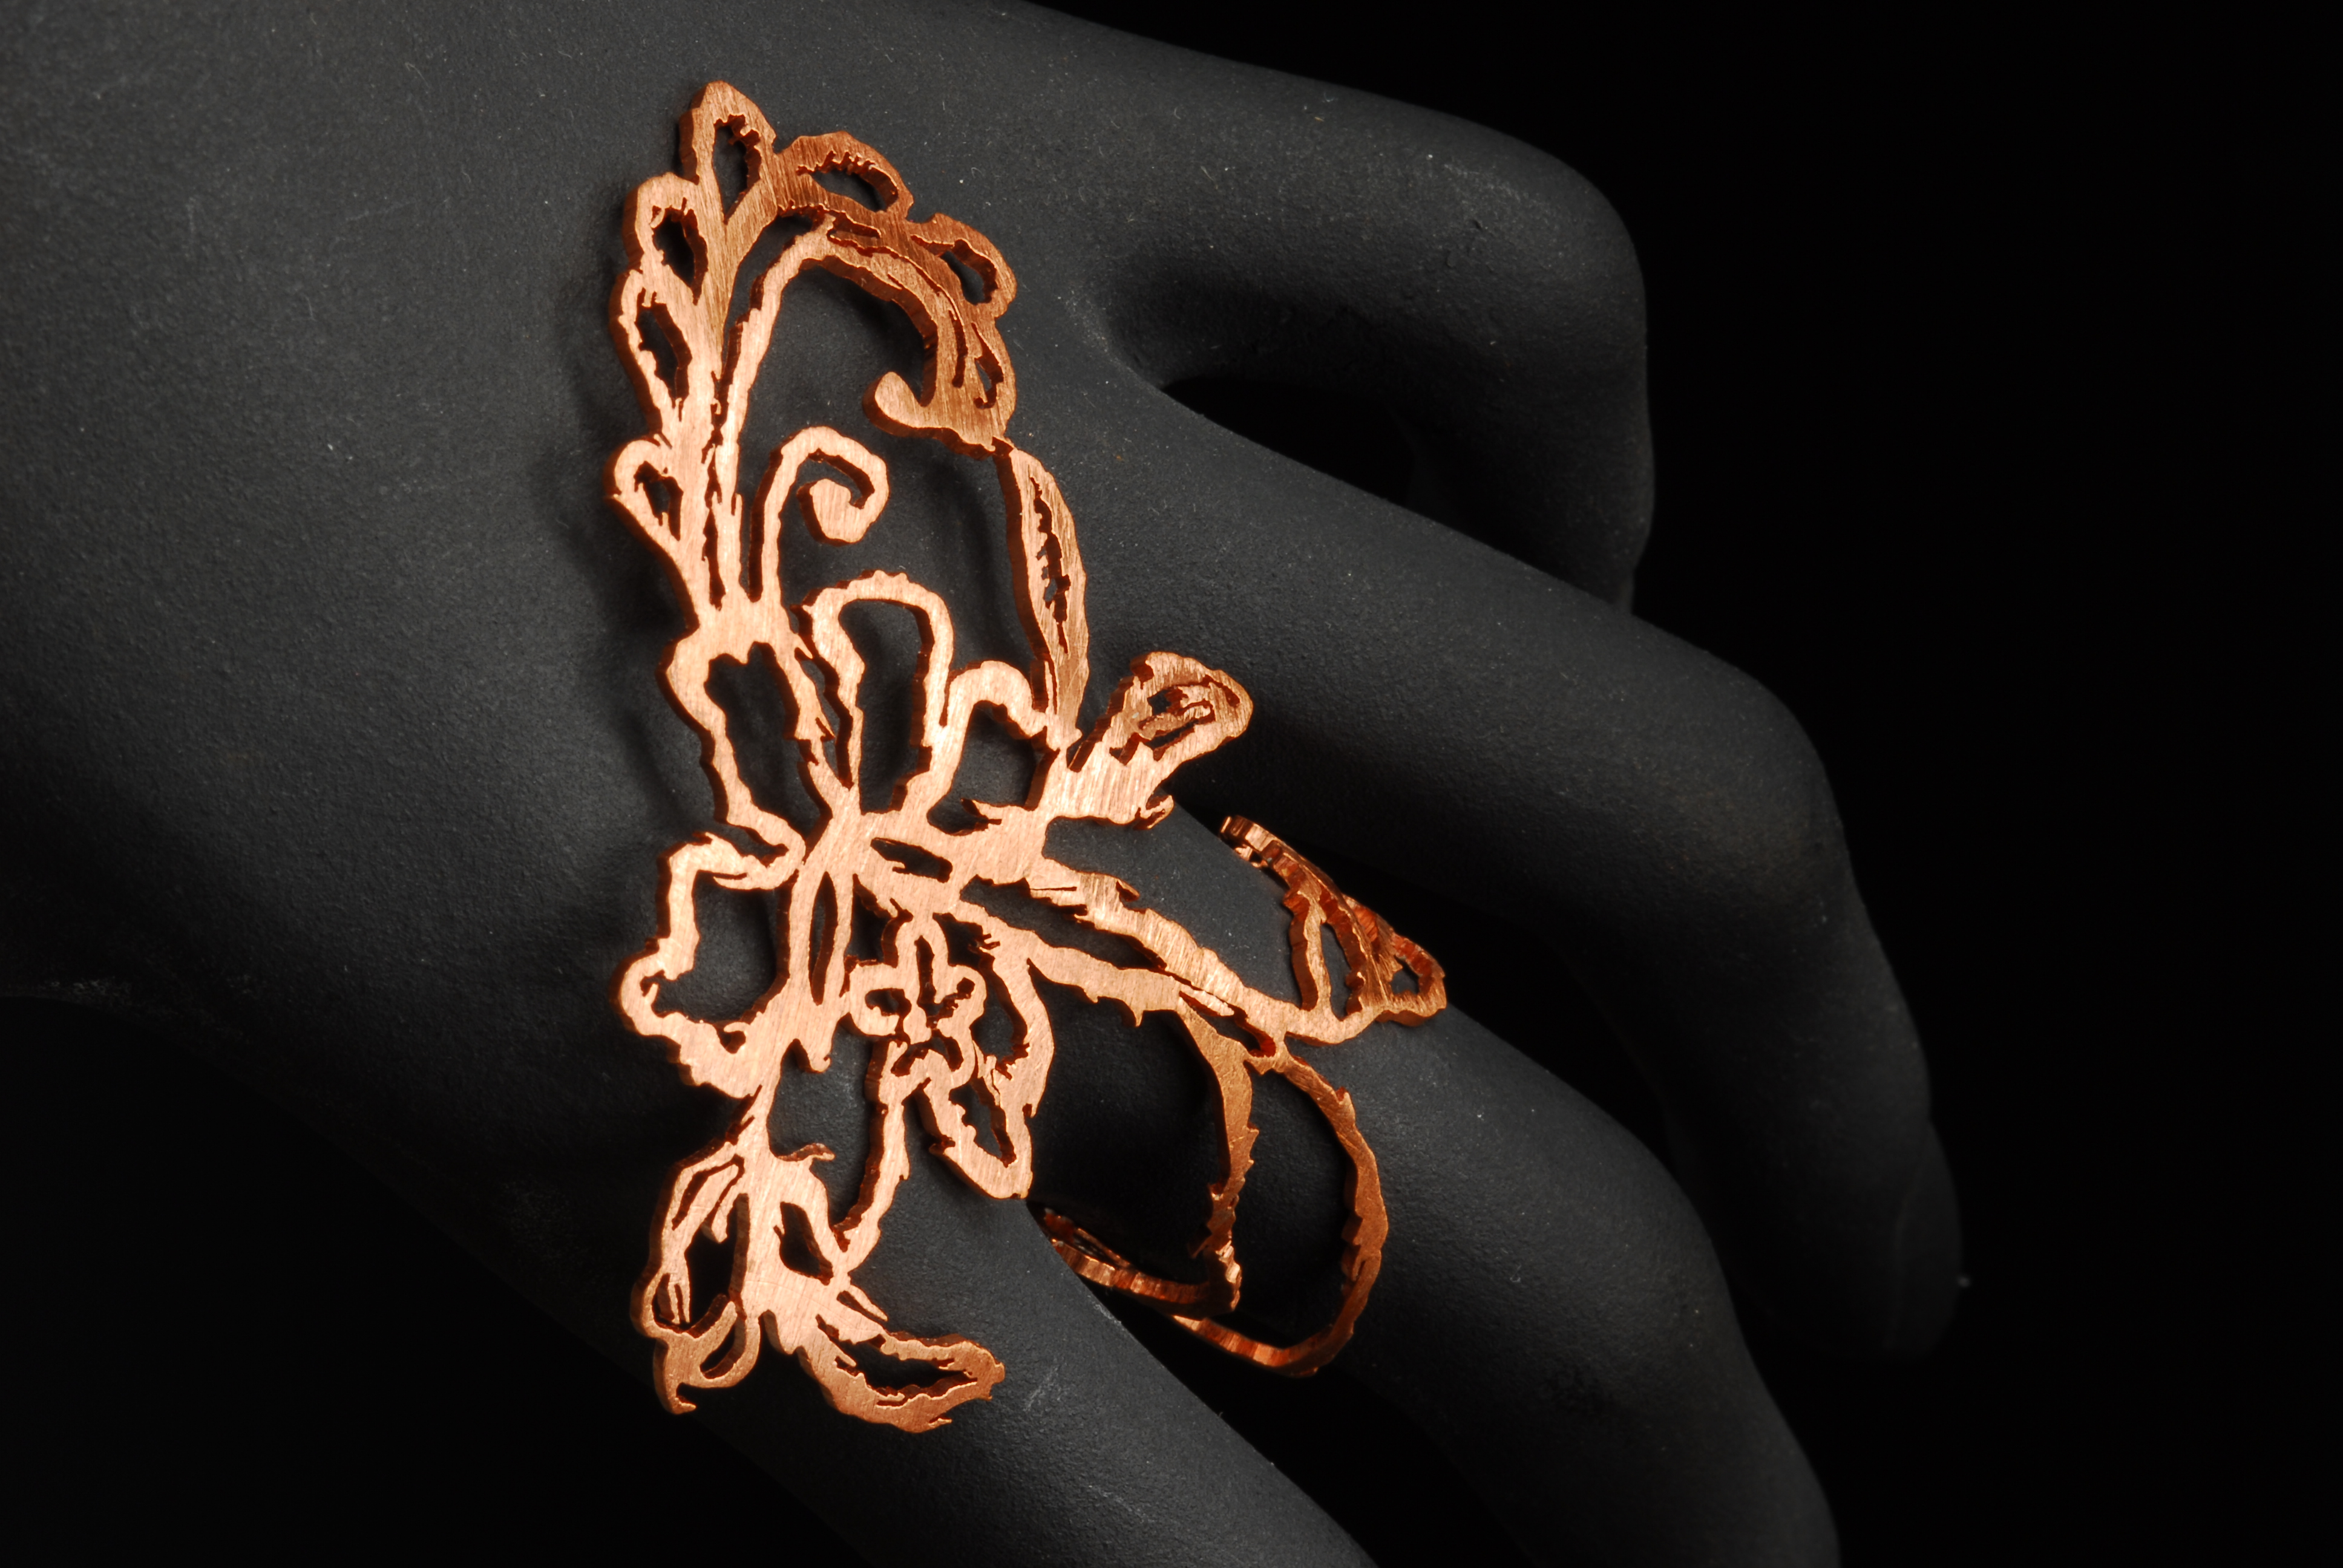 Sketched Lace Ring II (2013)